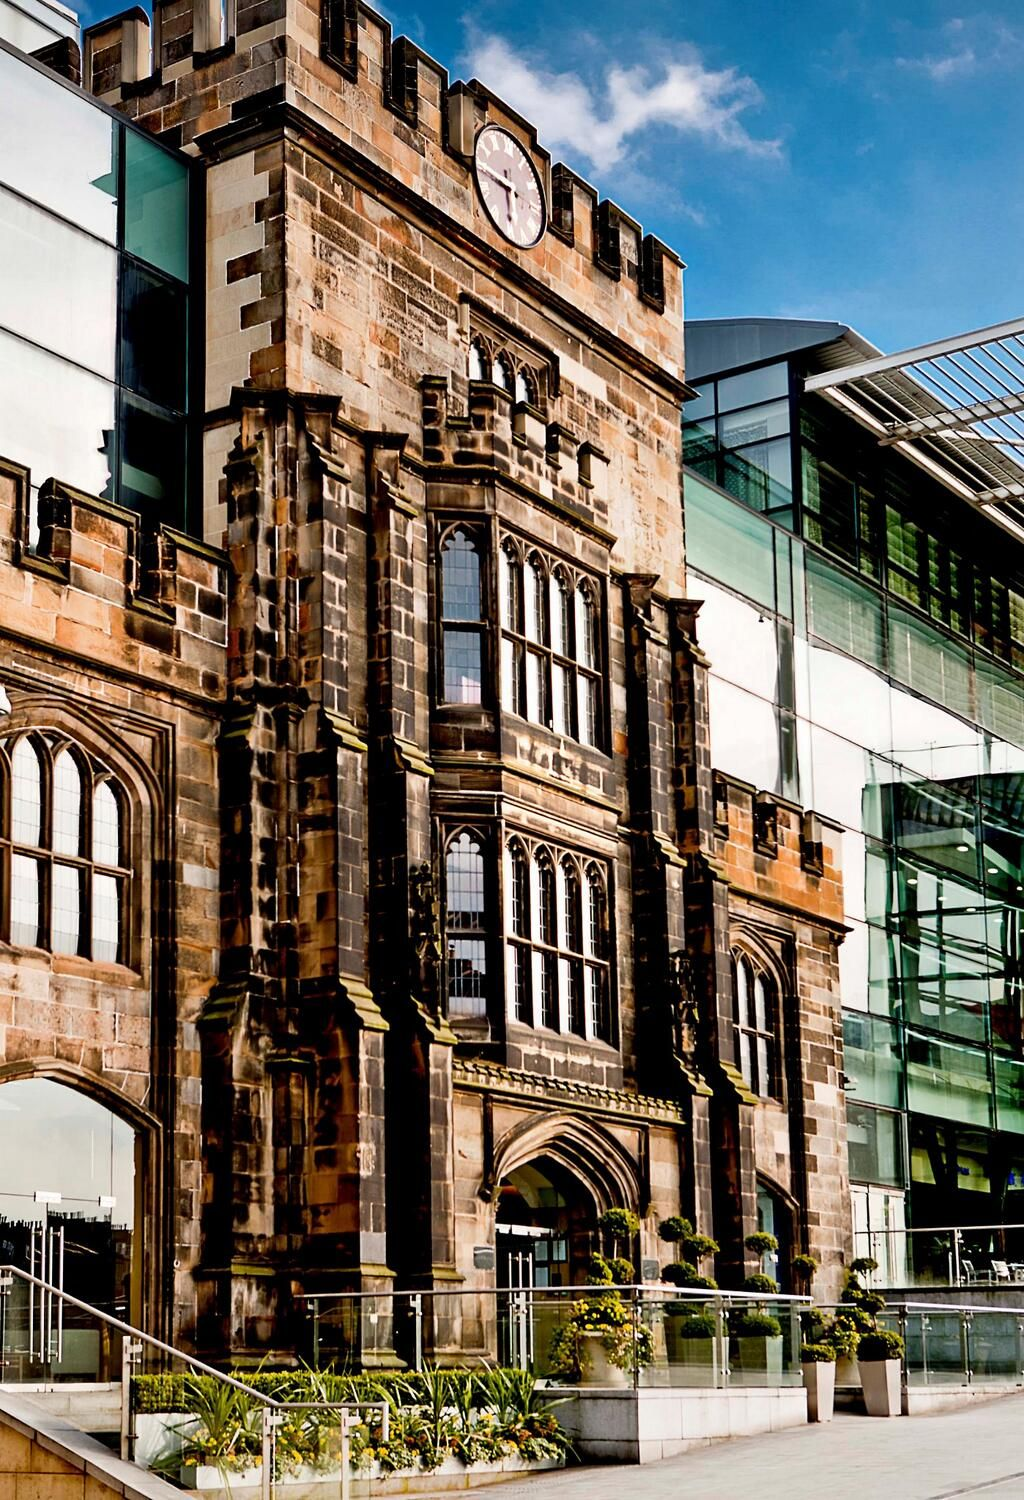 #ScotHotelsWeek @FreshwaterPR  @Welcome to Scotland The stunning @hotelglasshouse in Edinburgh pic.twitter.com/ITngwDD7wY